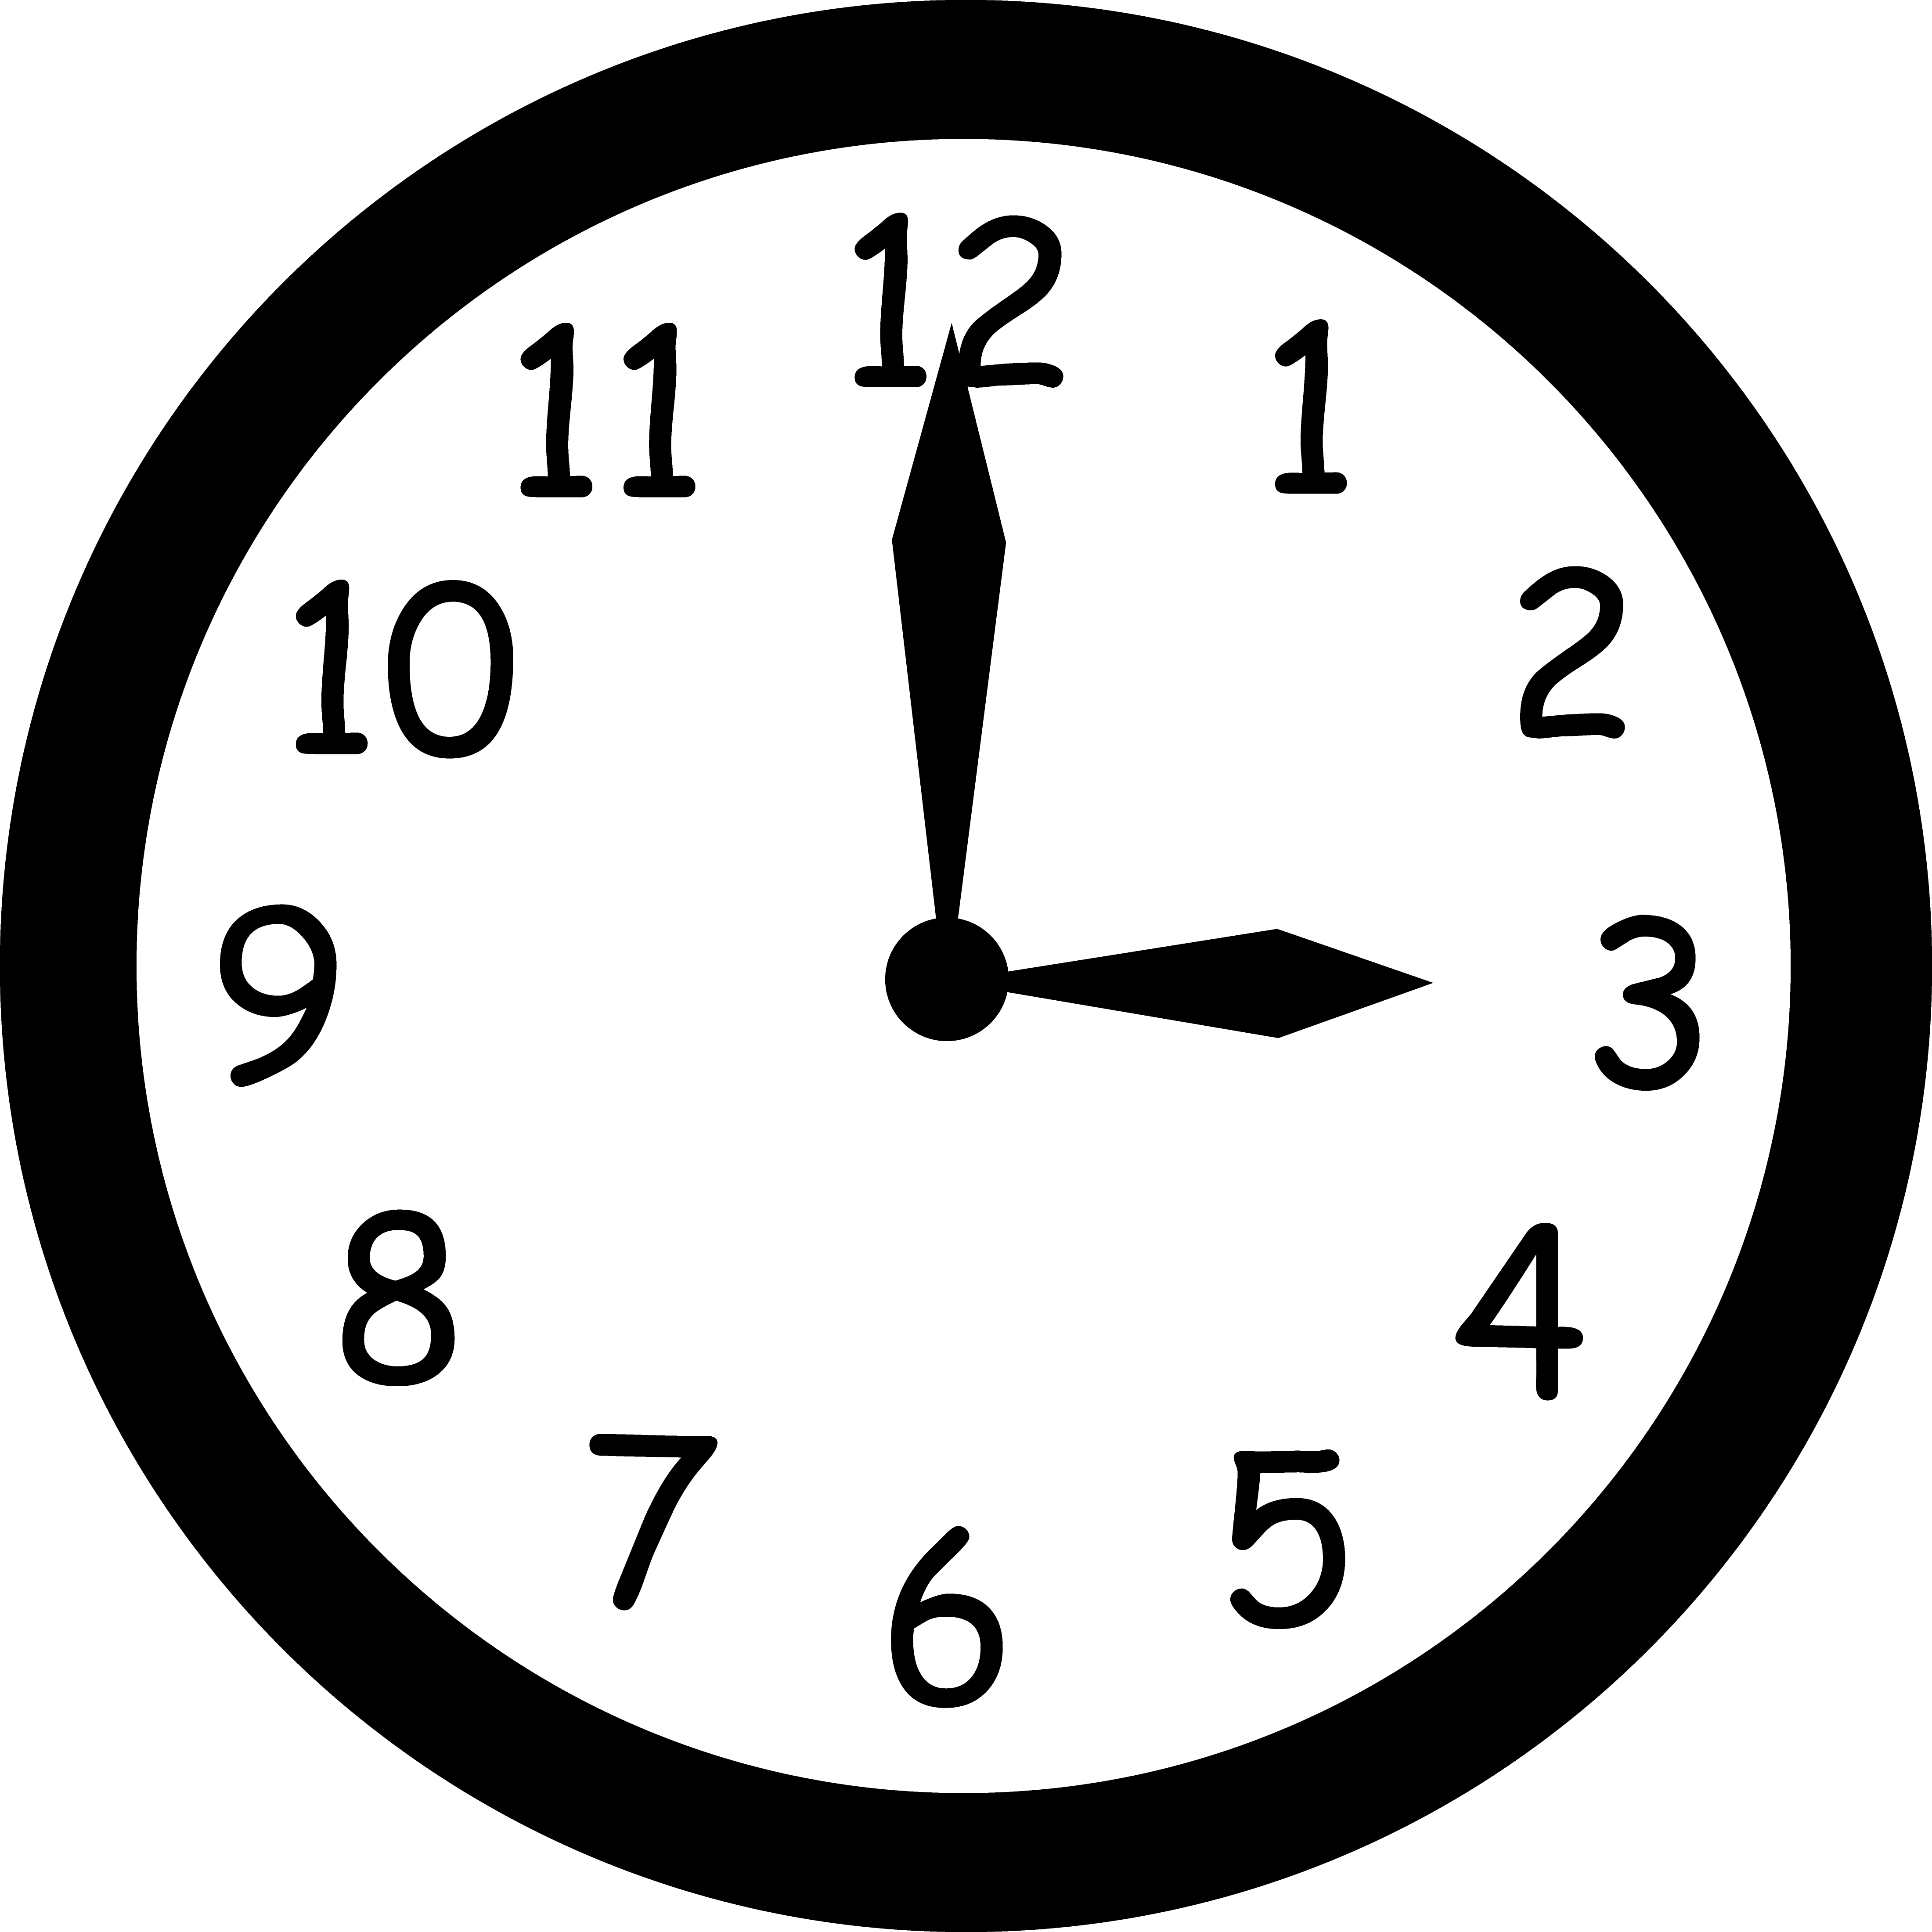 Free Photos Black And White | Black and White Clock Reading Three - Wall Clock PNG Black And White